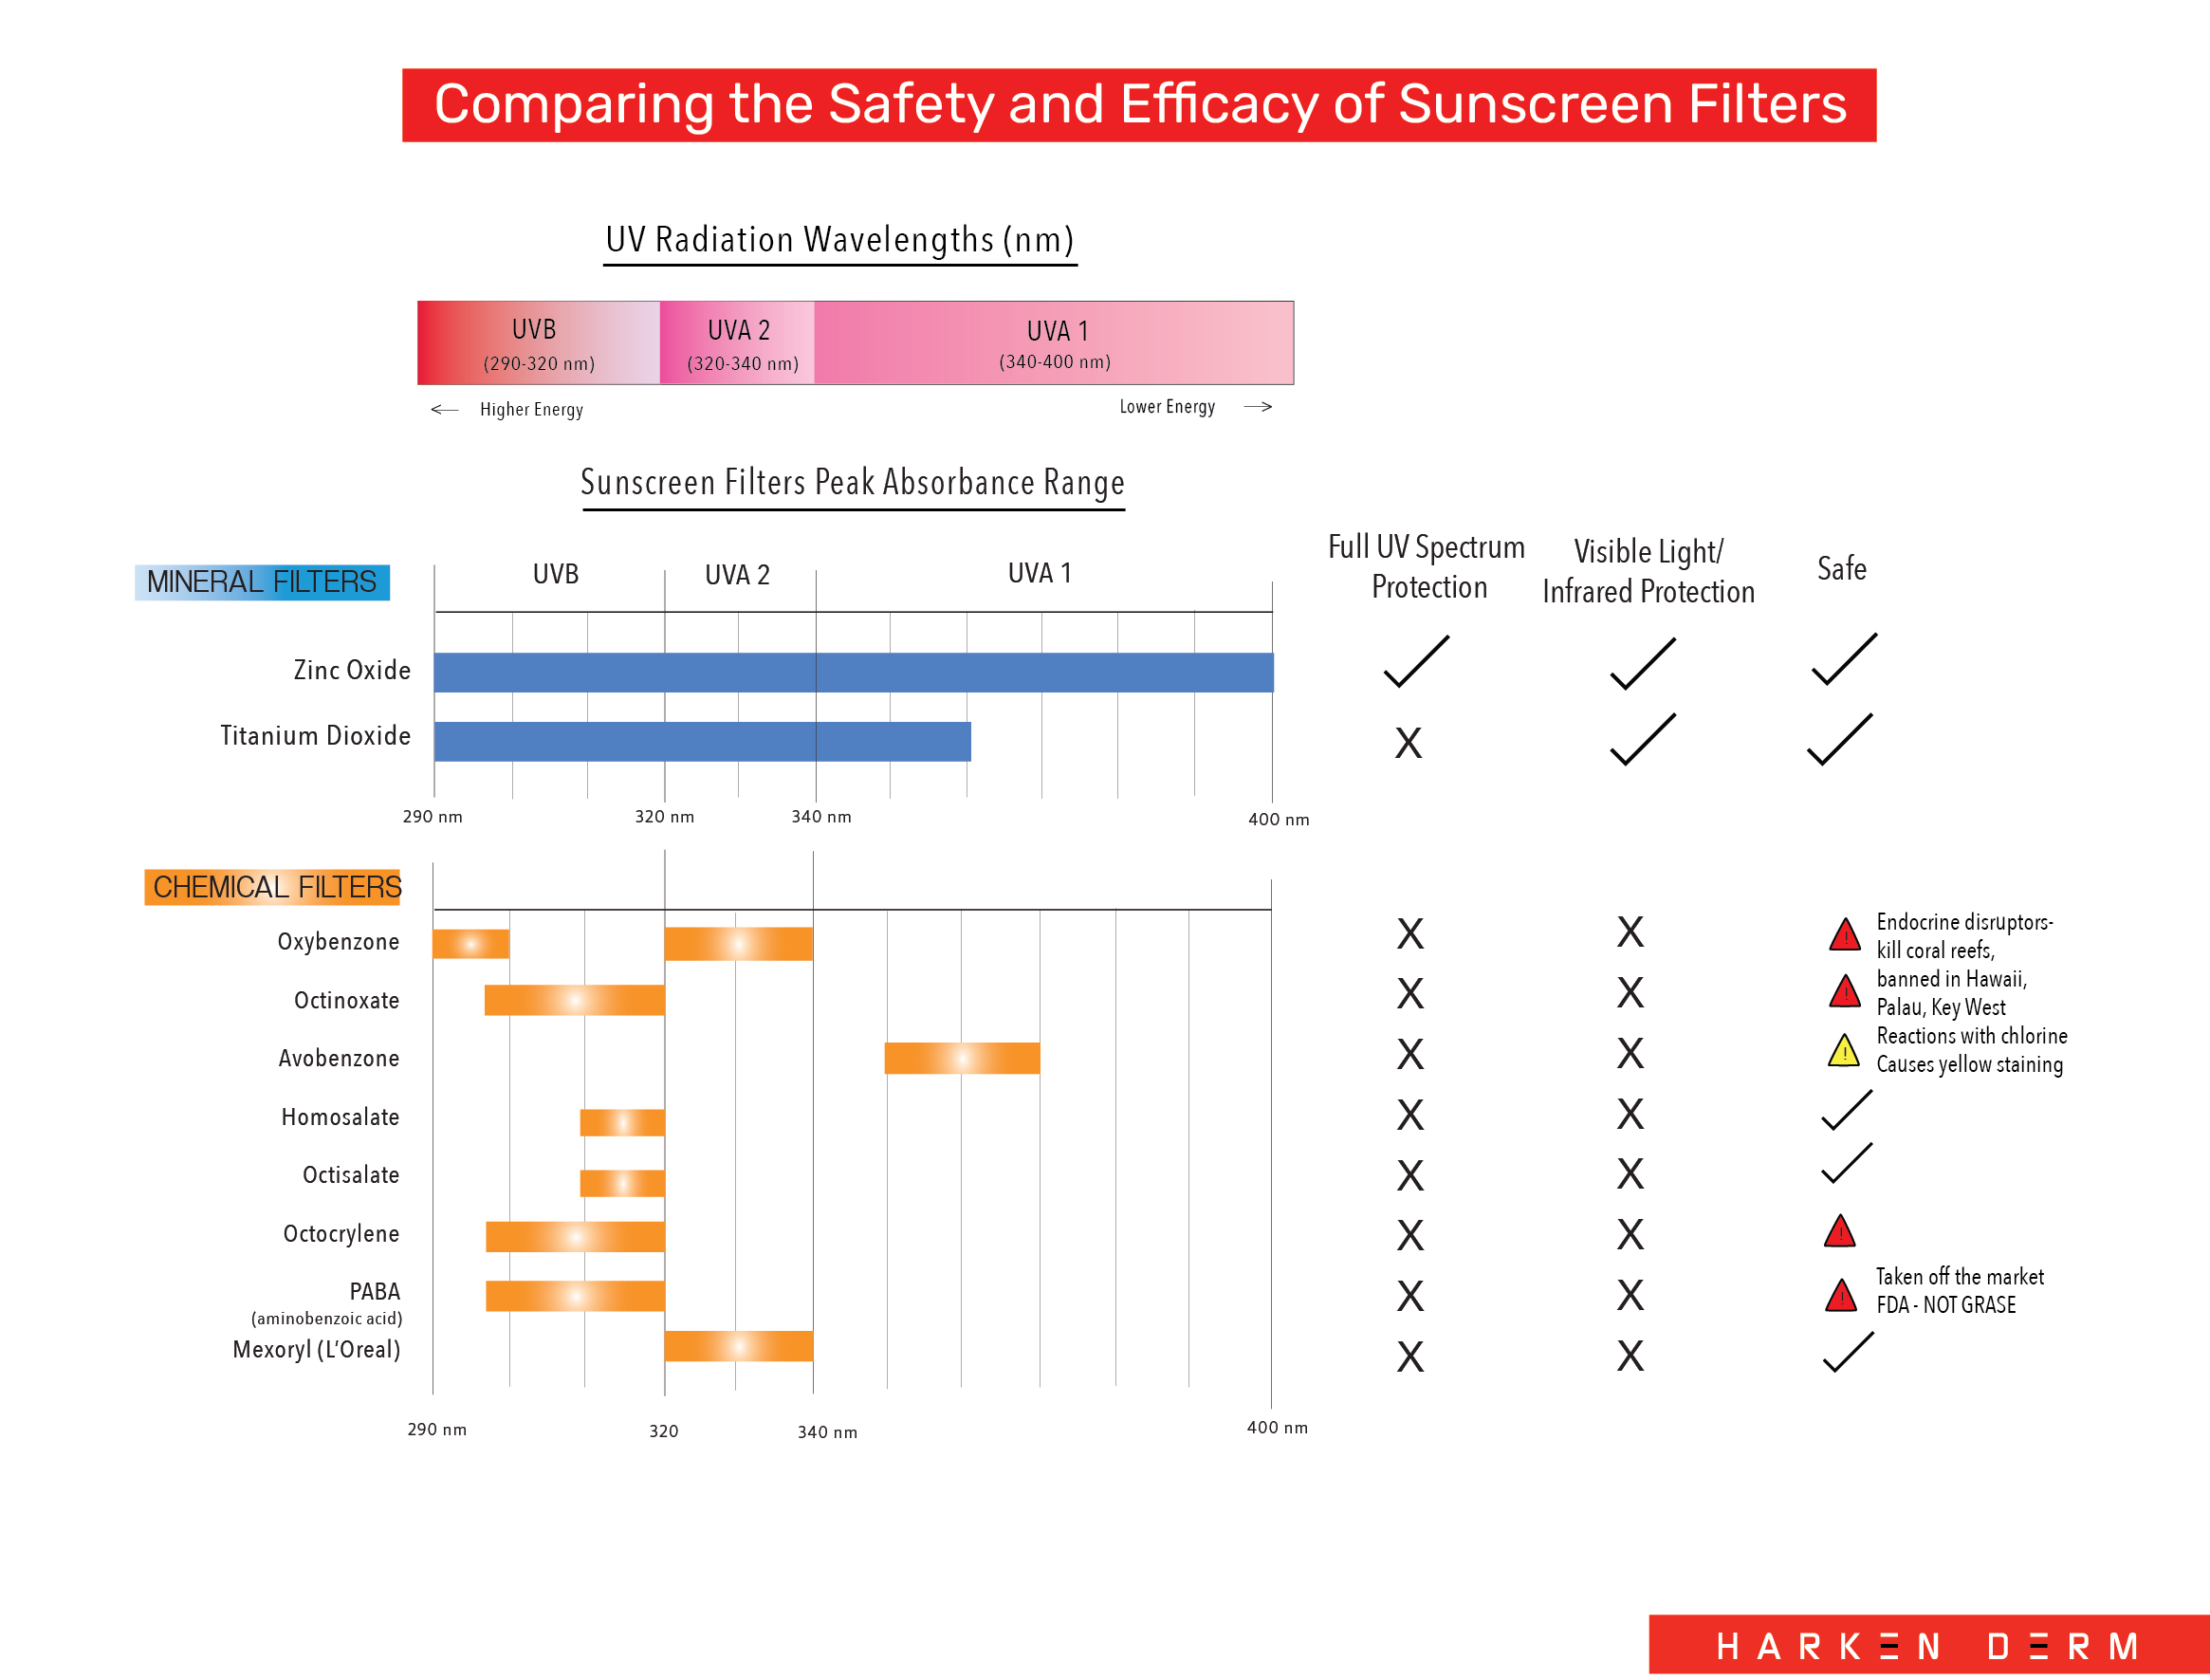 Comparing+the+safety+and+efficacy+of+sunscreen+filters+mineral+vs+chemical